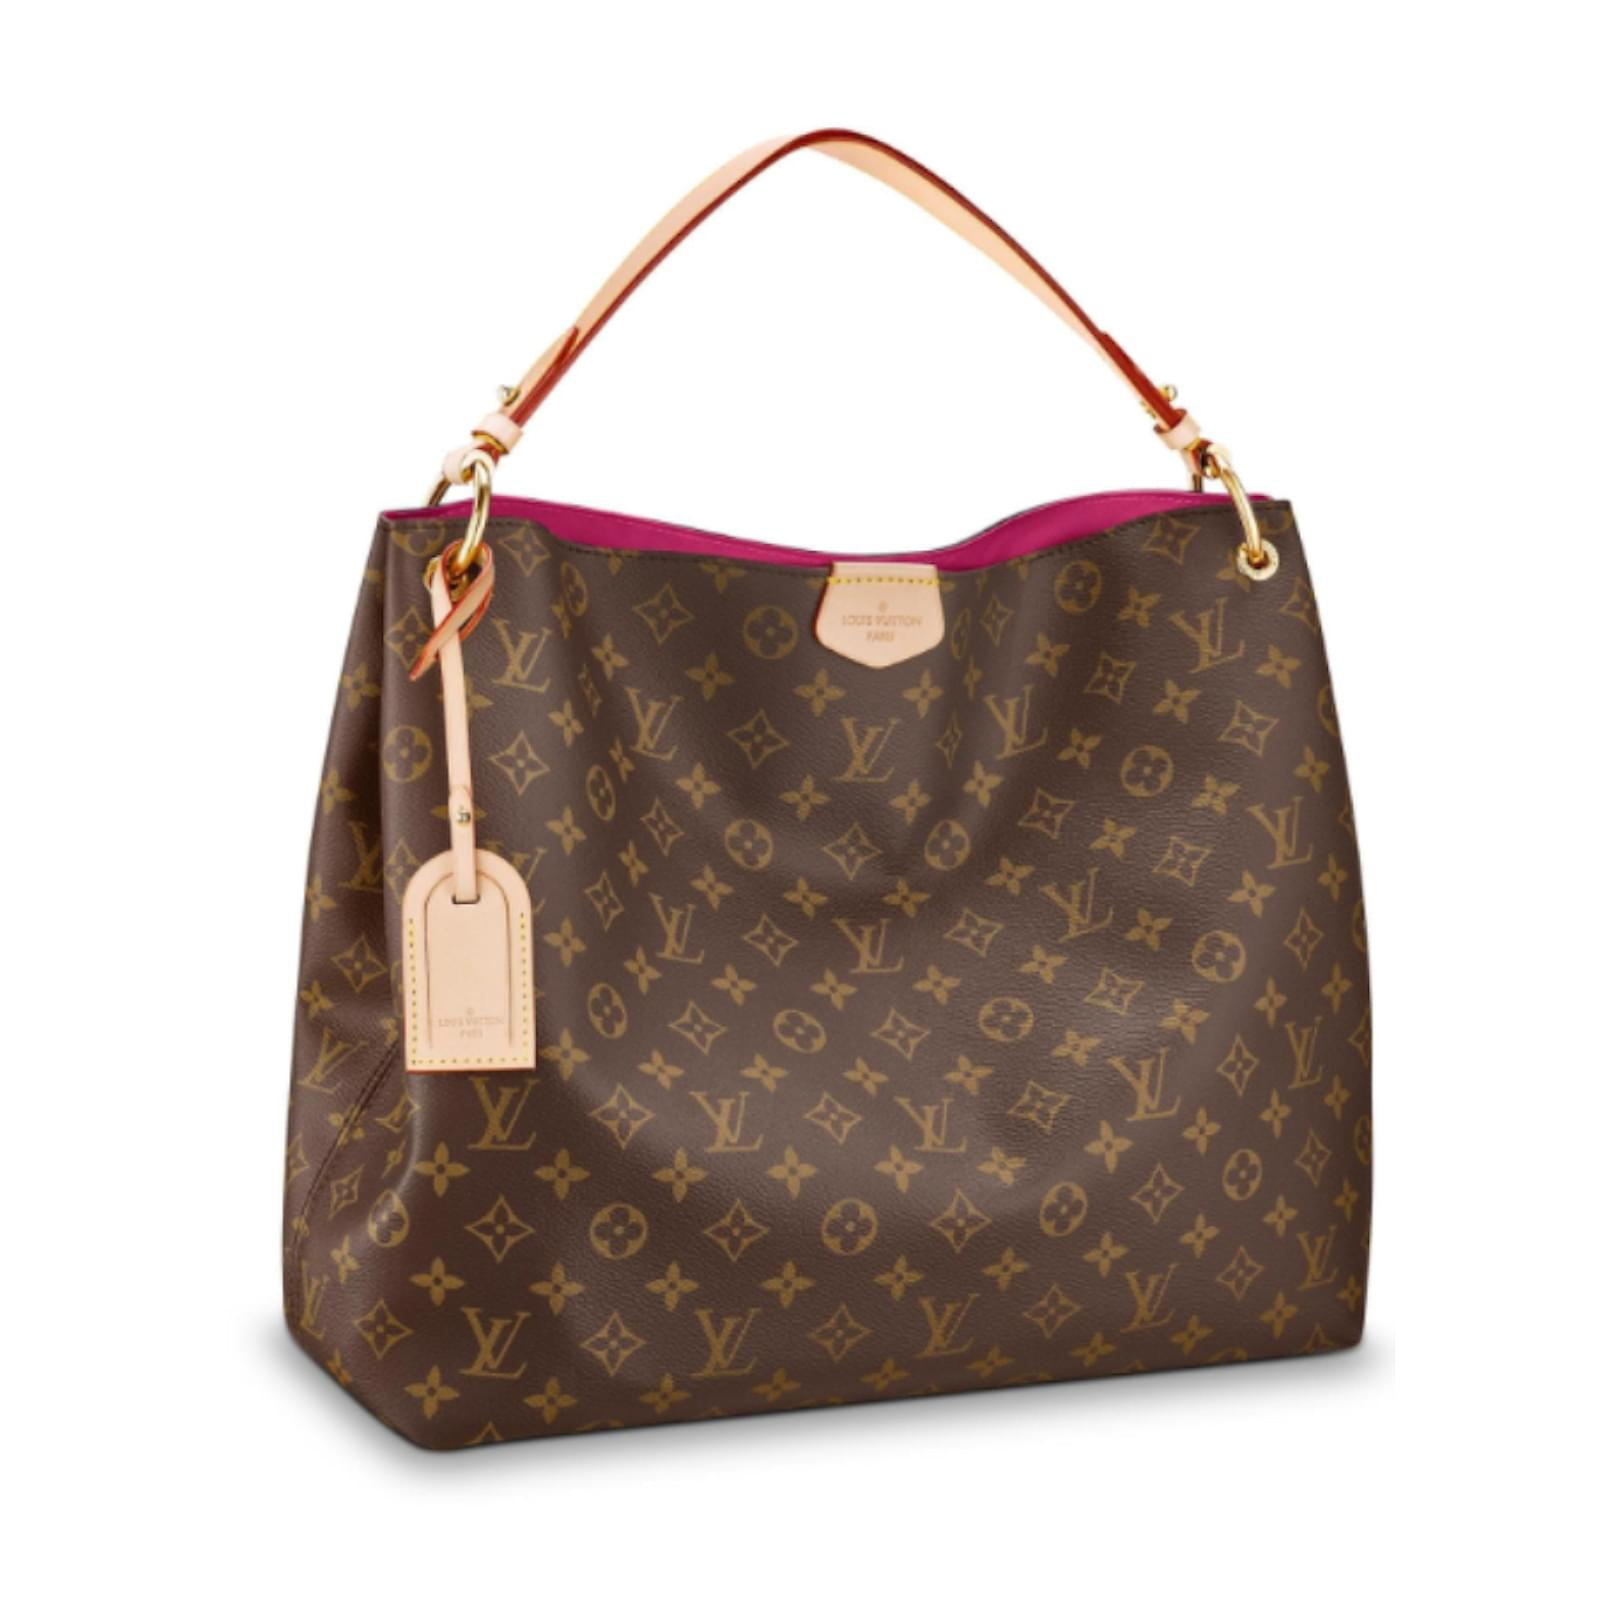 Louis Vuitton Handbags Leather Other Ref 75925